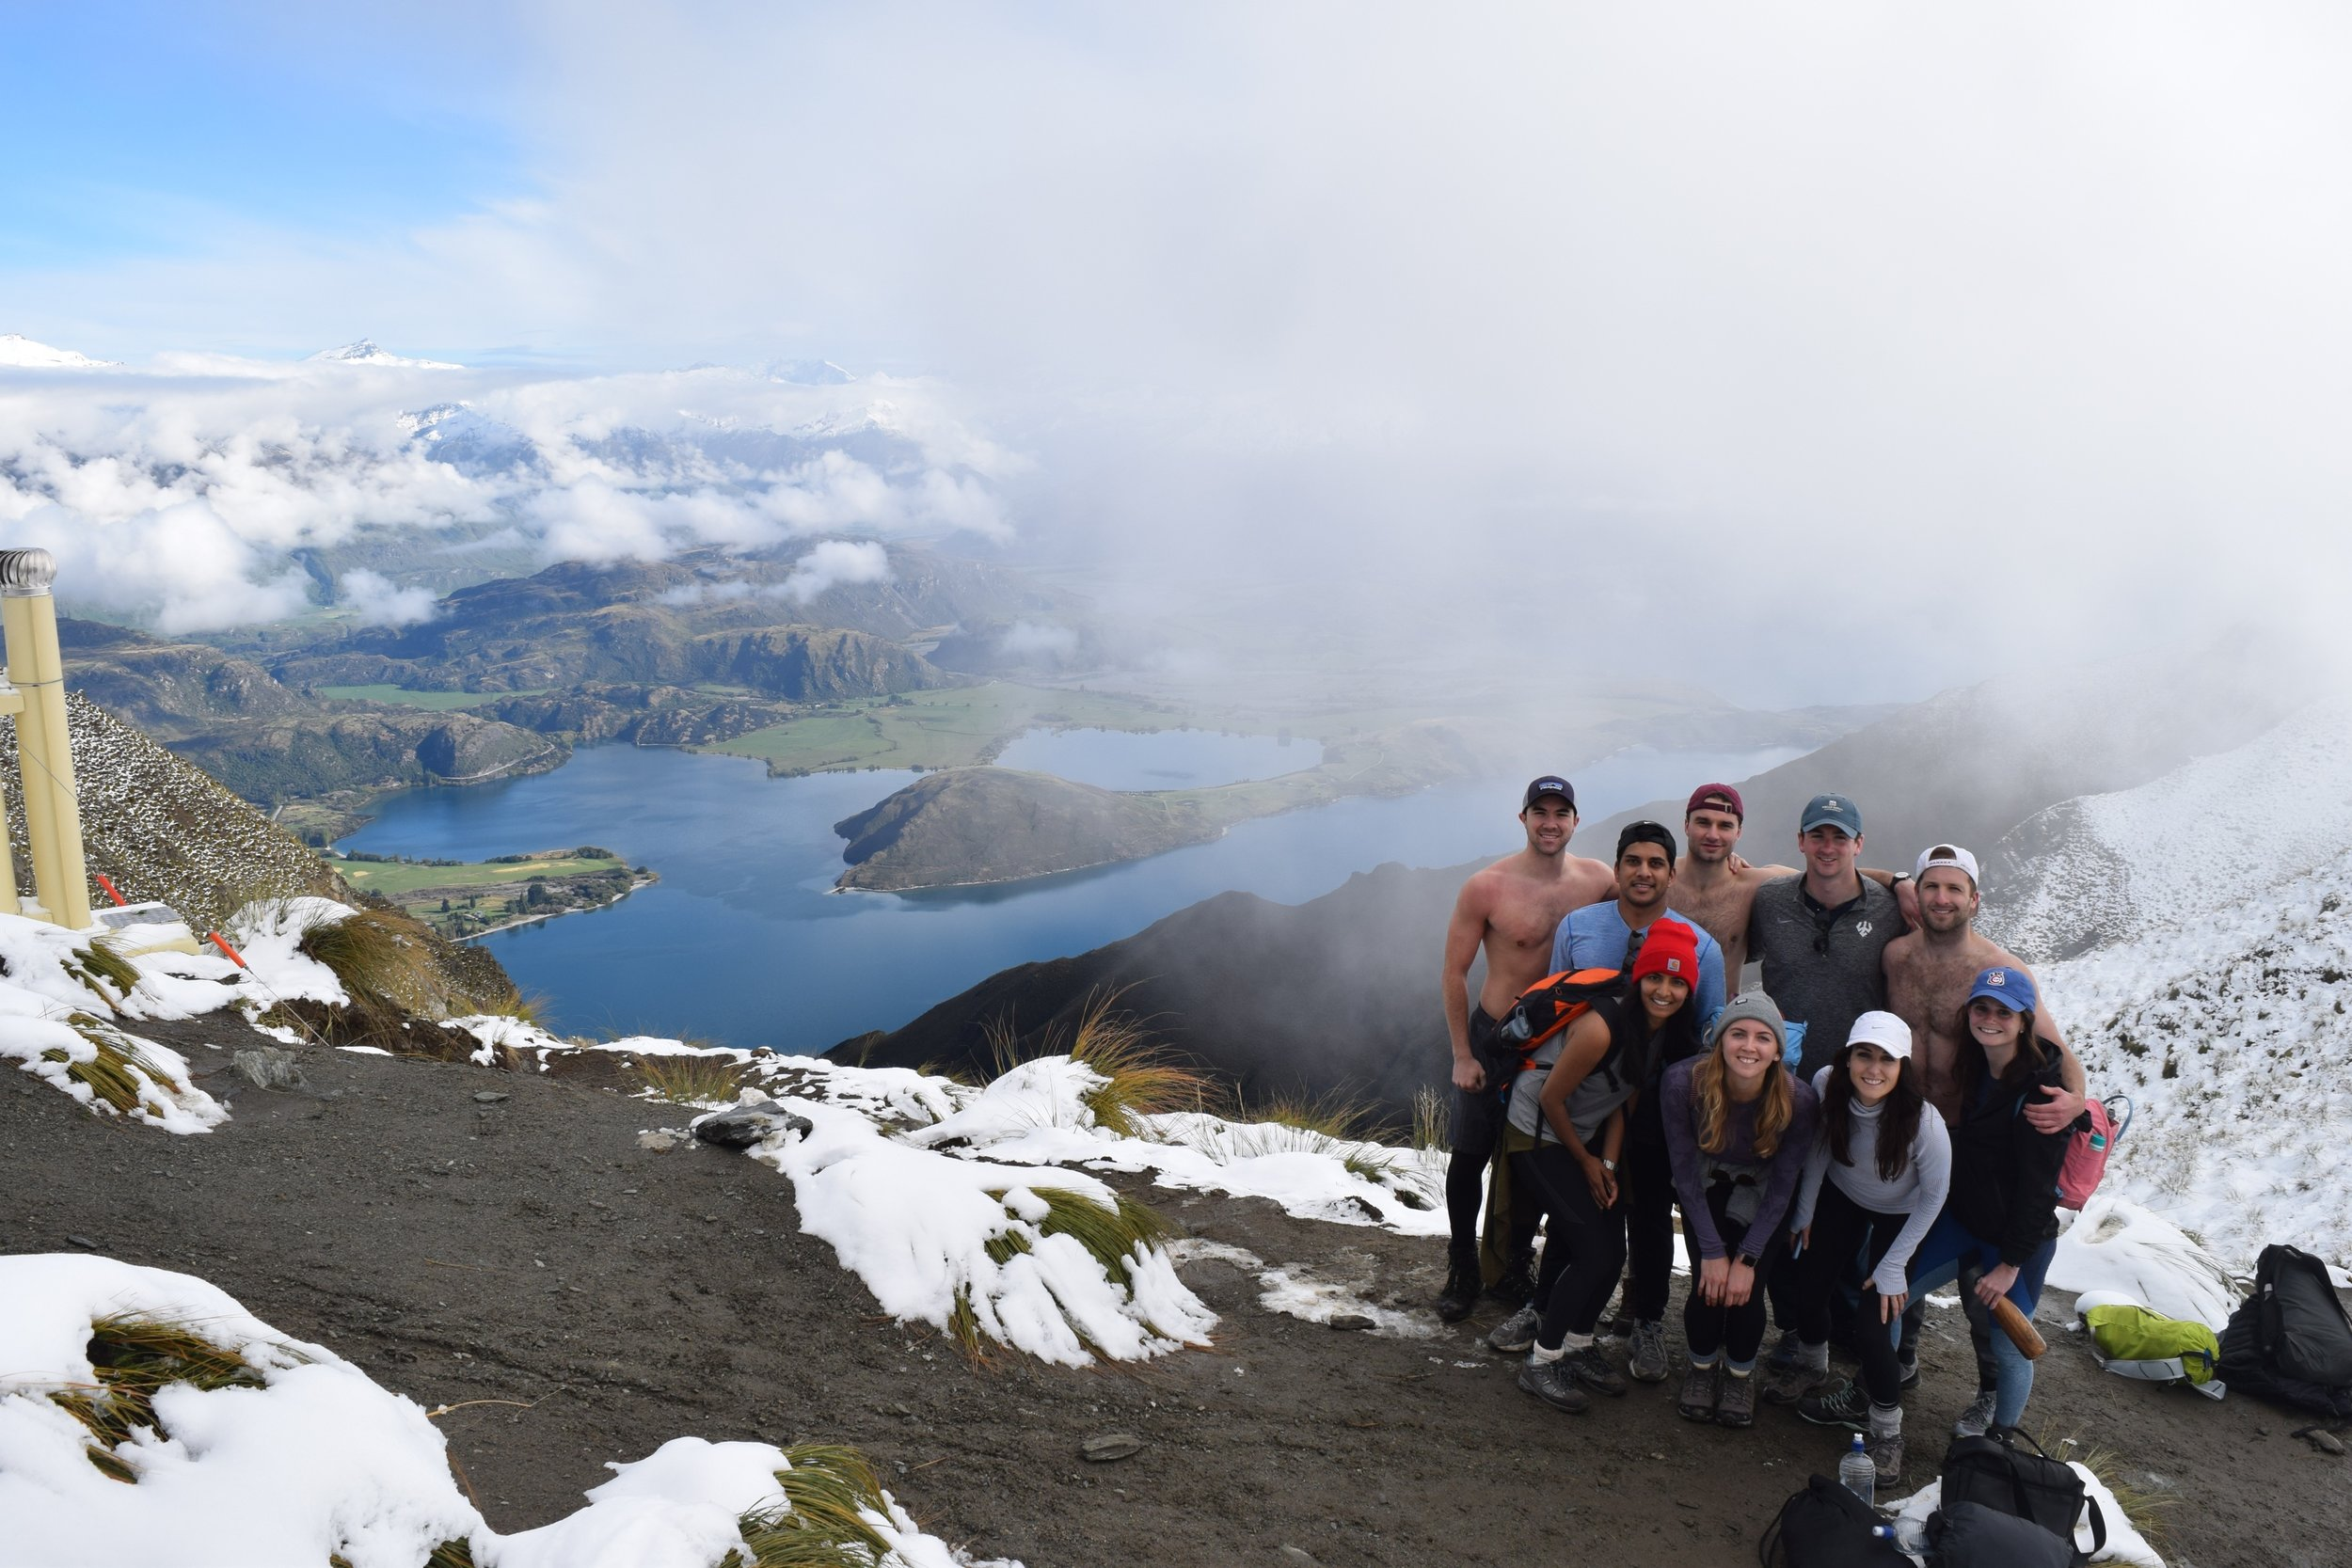 The group at the top of Roys Peak in Wanaka, New Zealand